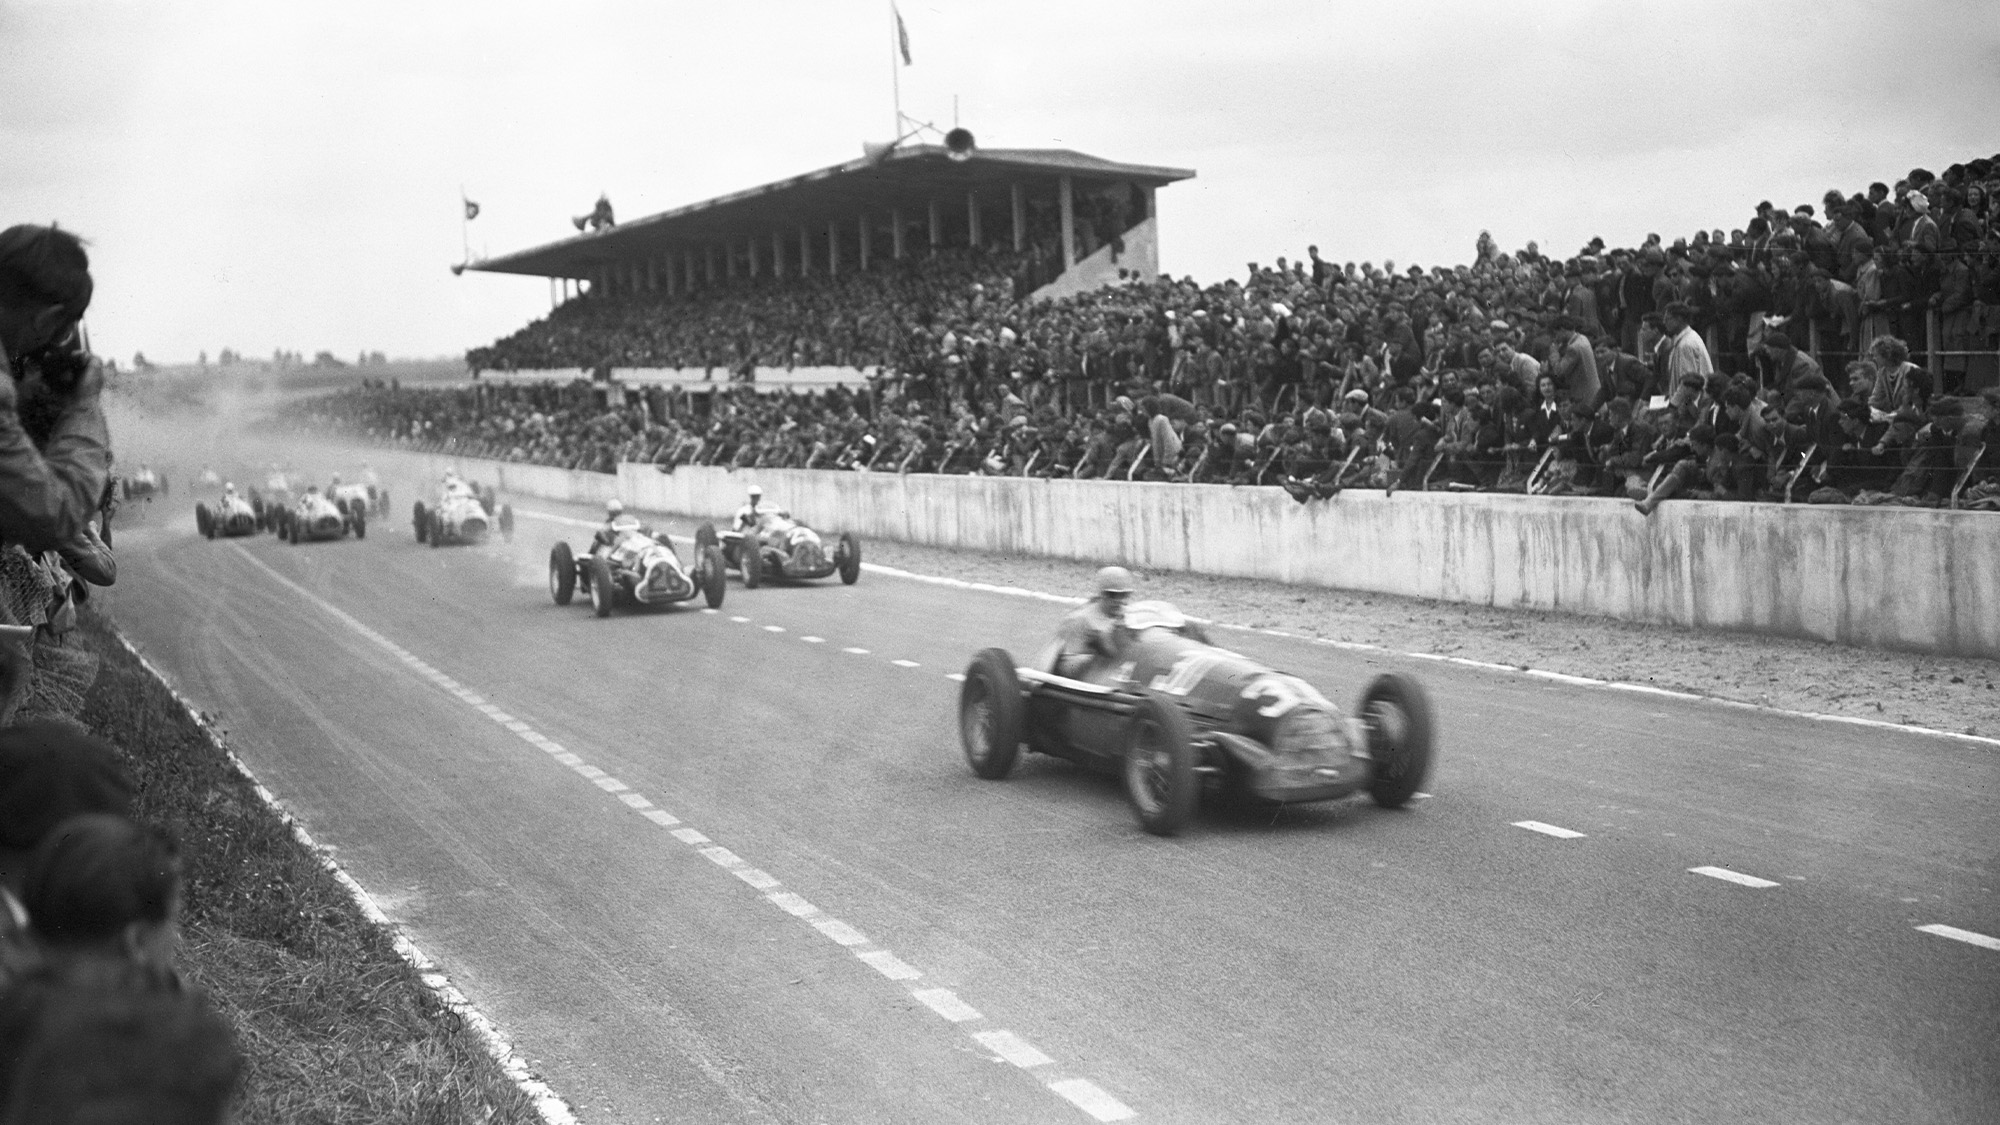 Jean-Pierre Wimille leads in his Alfa Romeo 158 at Reims-Gueux in 1948